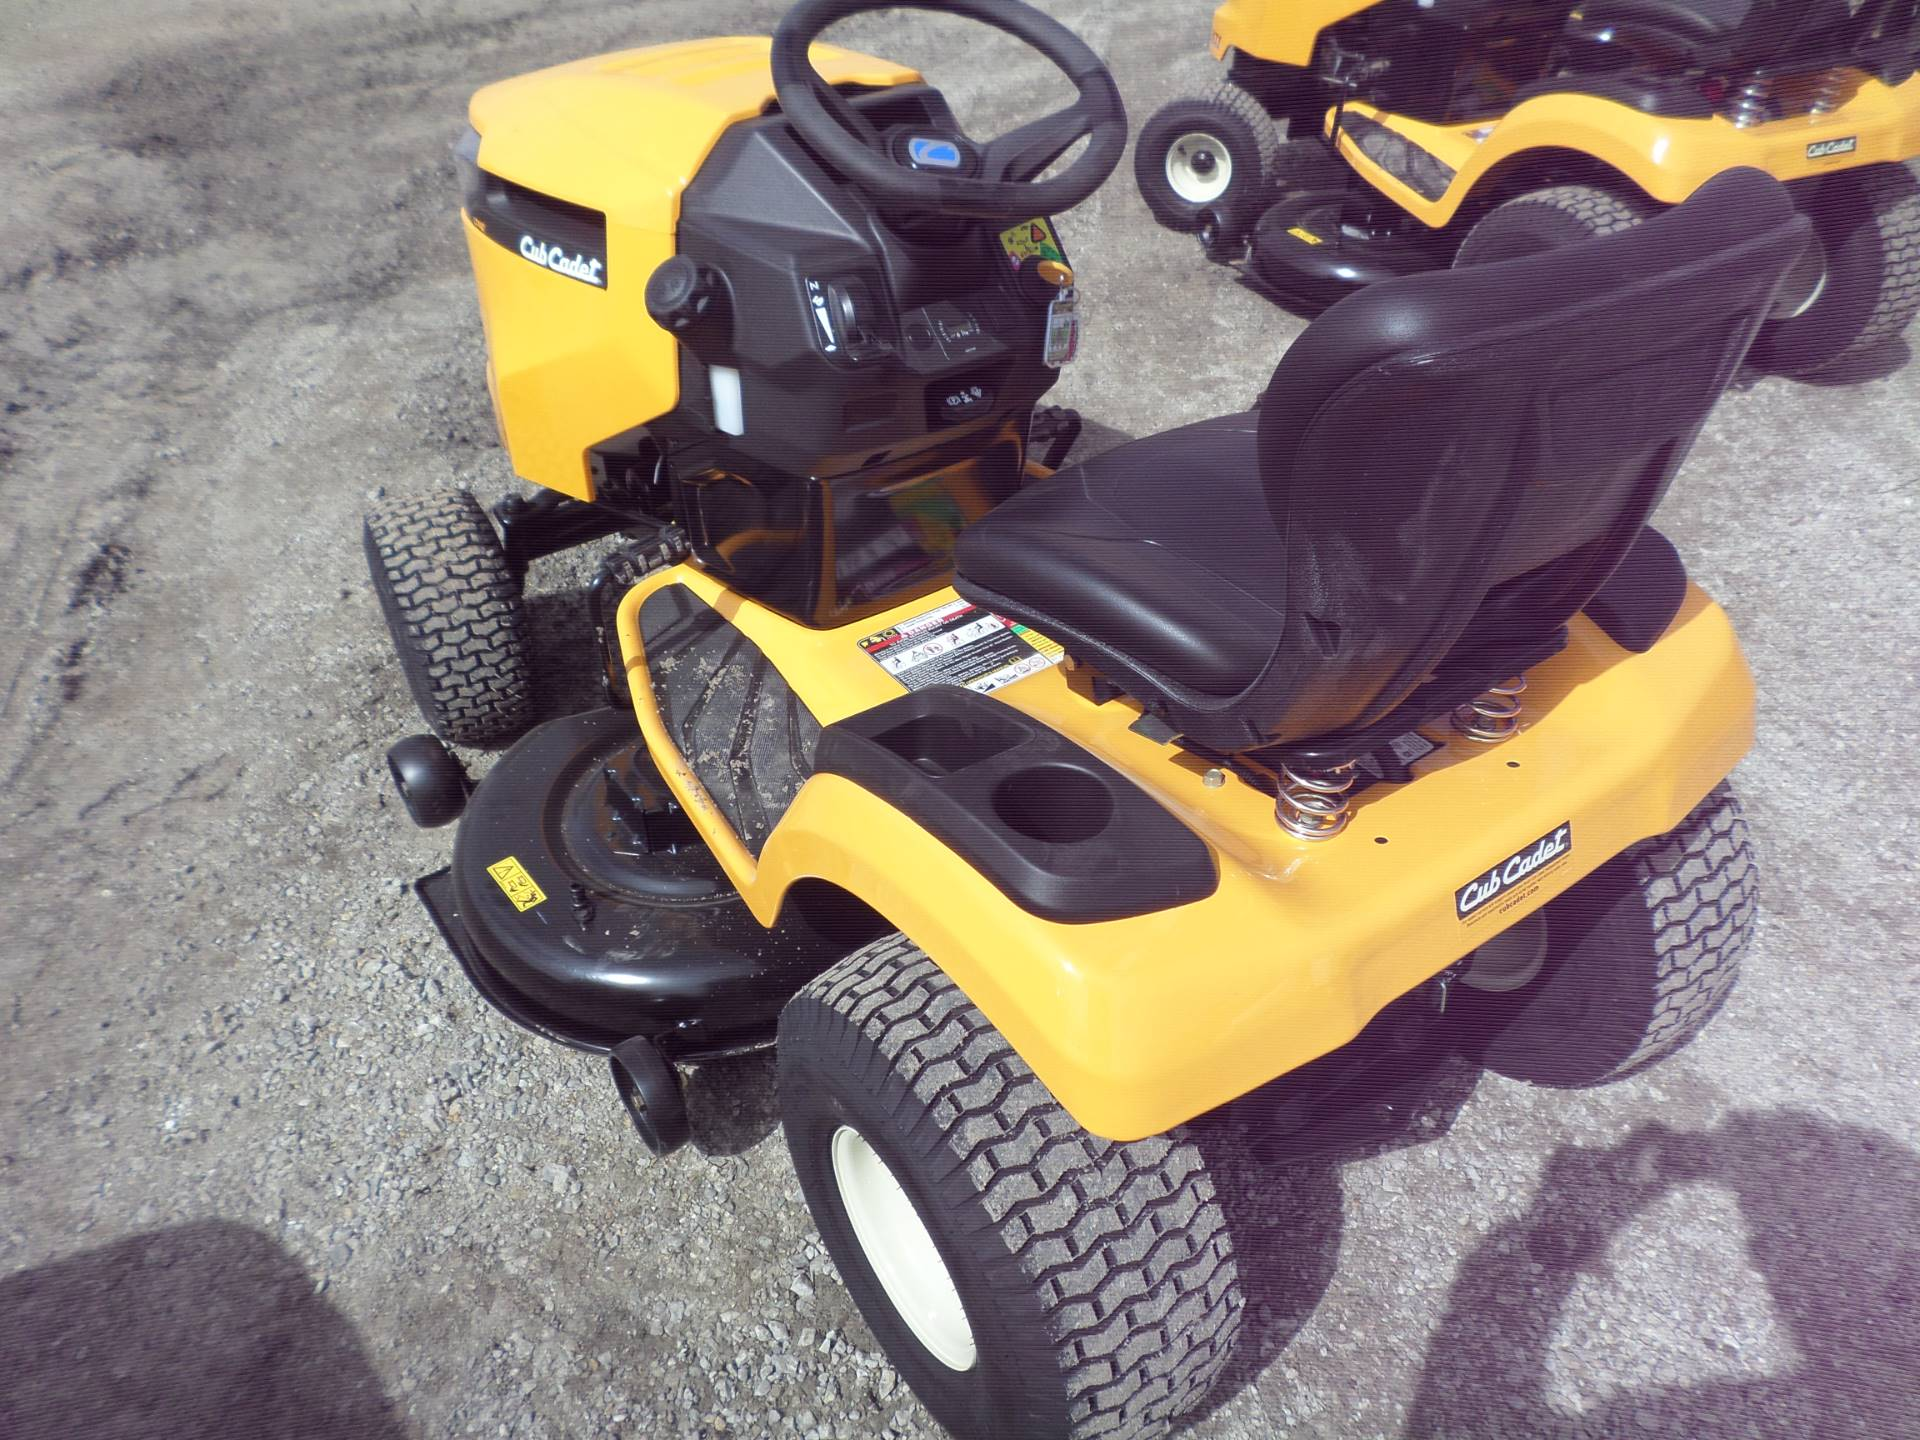 2019 Cub Cadet XT1 LT 46 in  in Lake Mills, Iowa